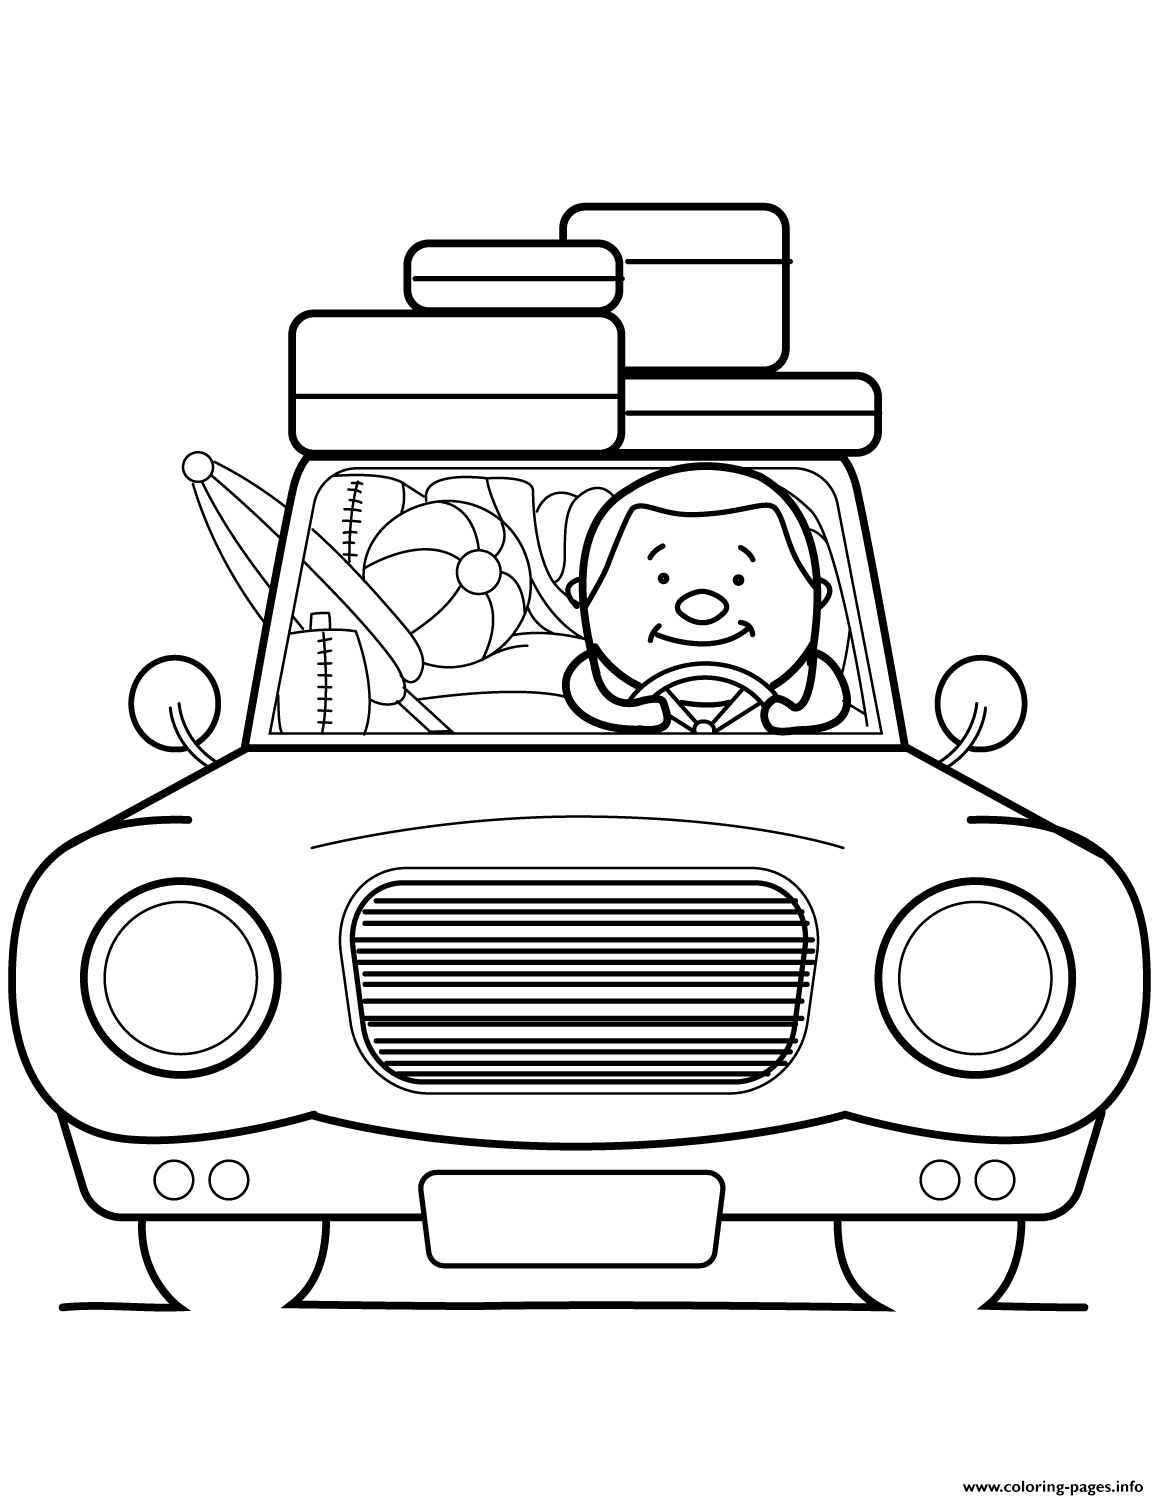 Go Summer Vacation Coloring Pages Printable